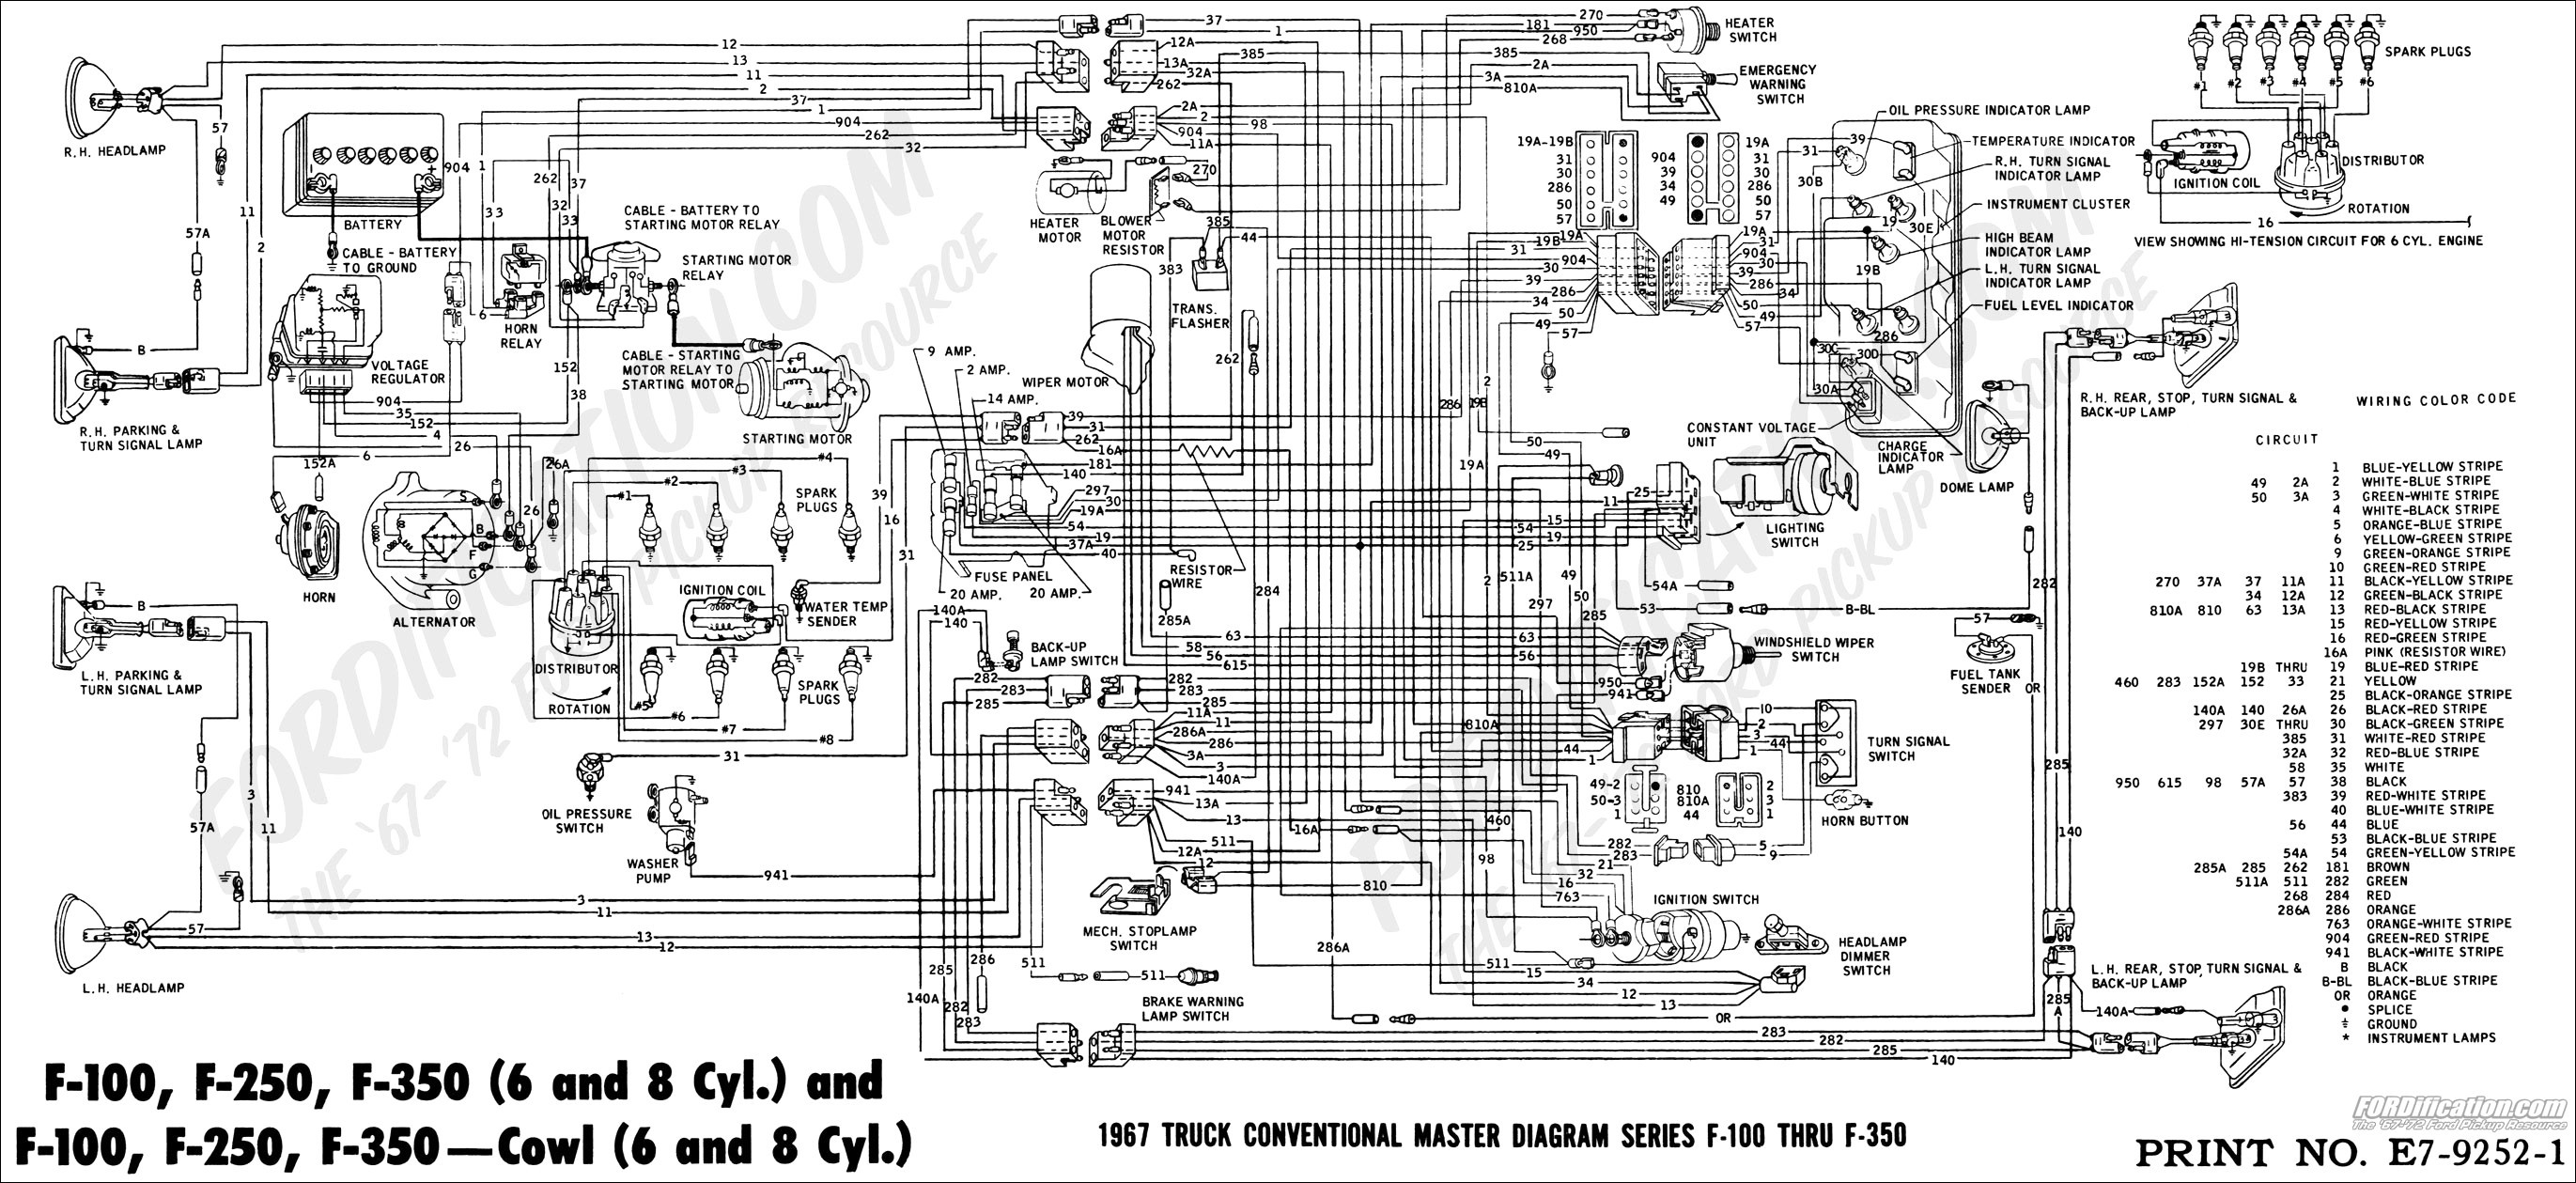 1995 Ford Truck Alternator Diagram Free Download 1g Wiring 92 F150 Trusted Diagrams